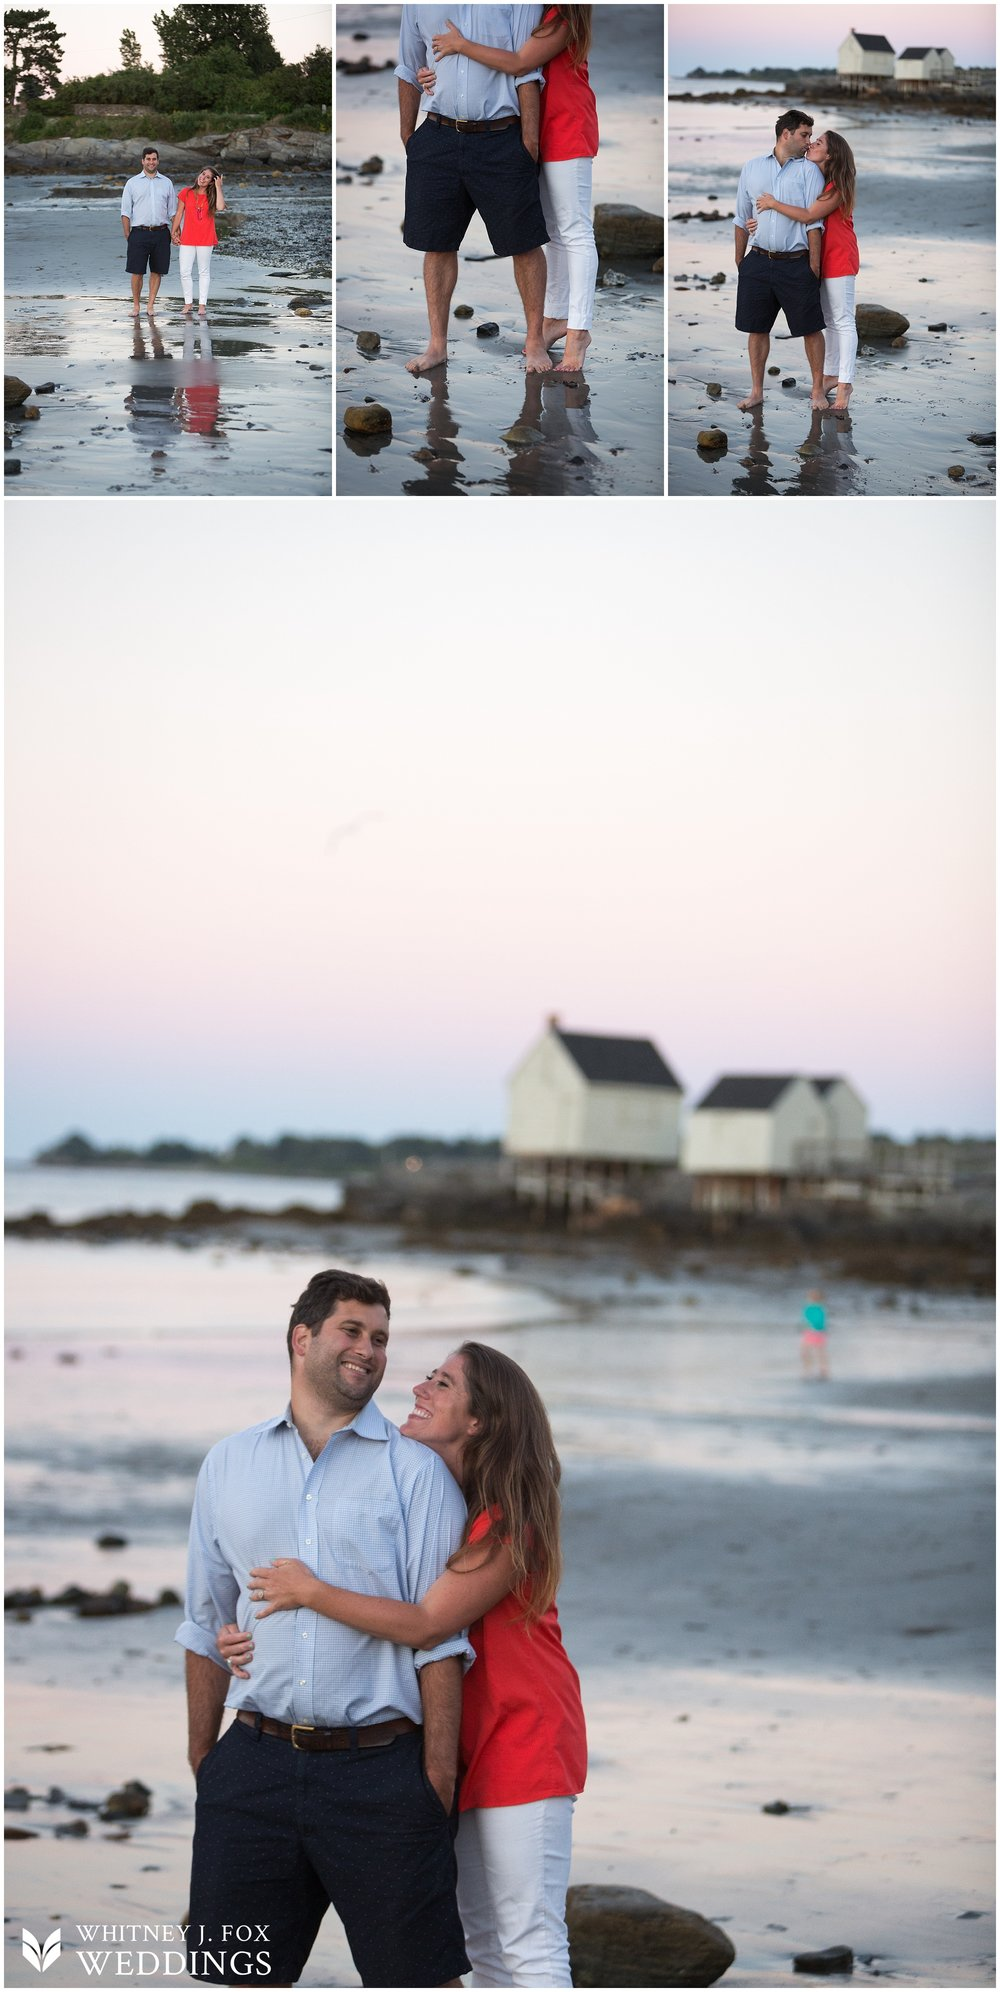 27_239_western_promenade_willard_beach_engagement_session_portland_maine_wedding_photographer_whitney_j_fox_8294.jpg